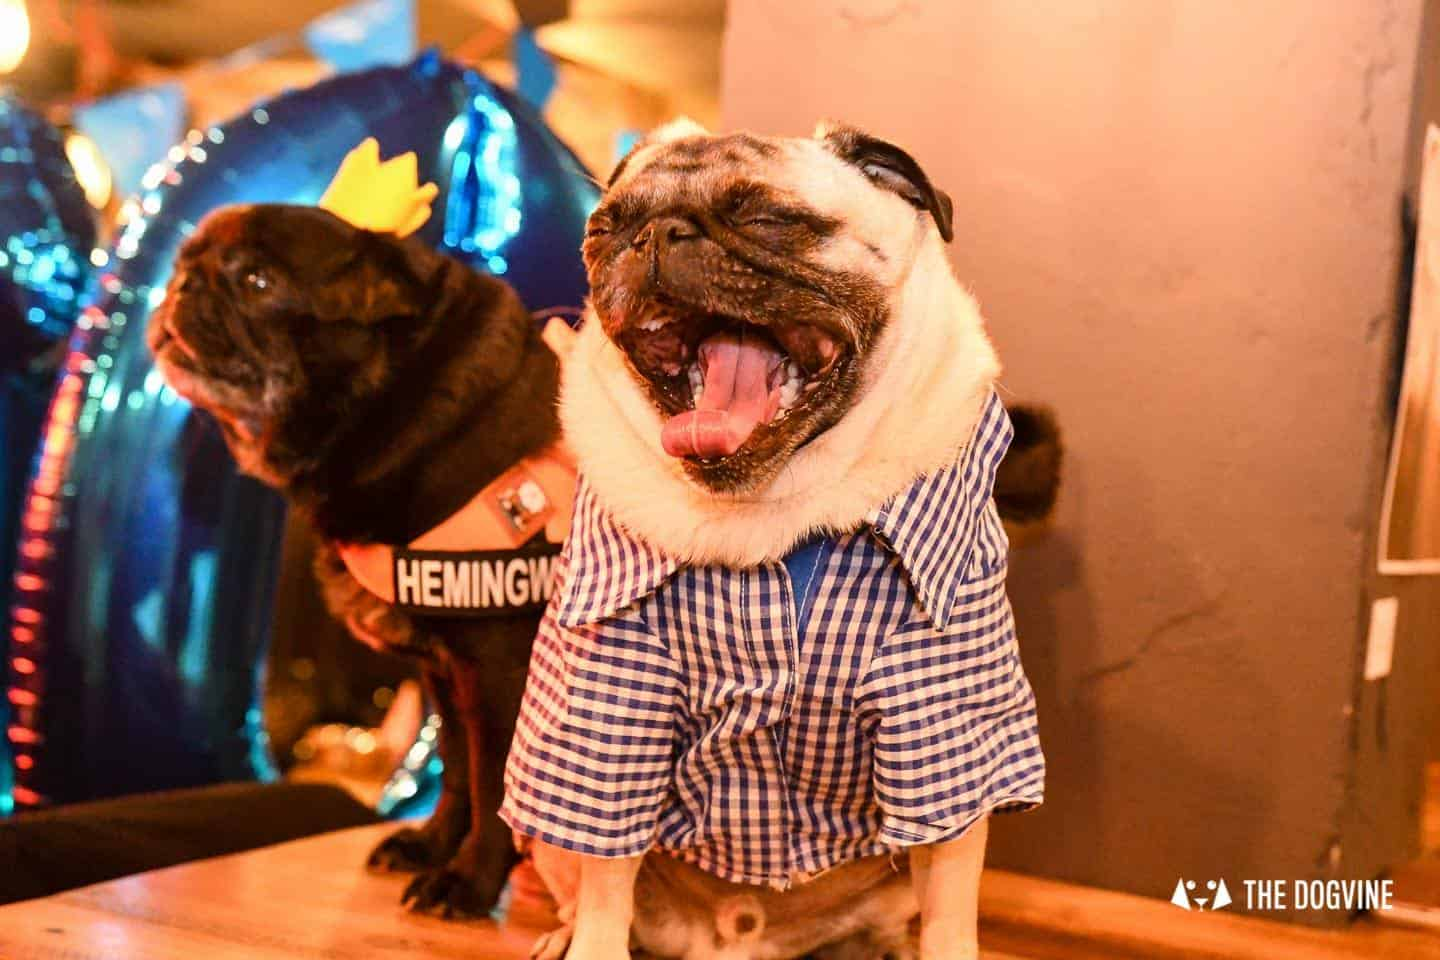 A Brewdog Dog Birthday Party to Celebrate Hemingway's Big Day 31